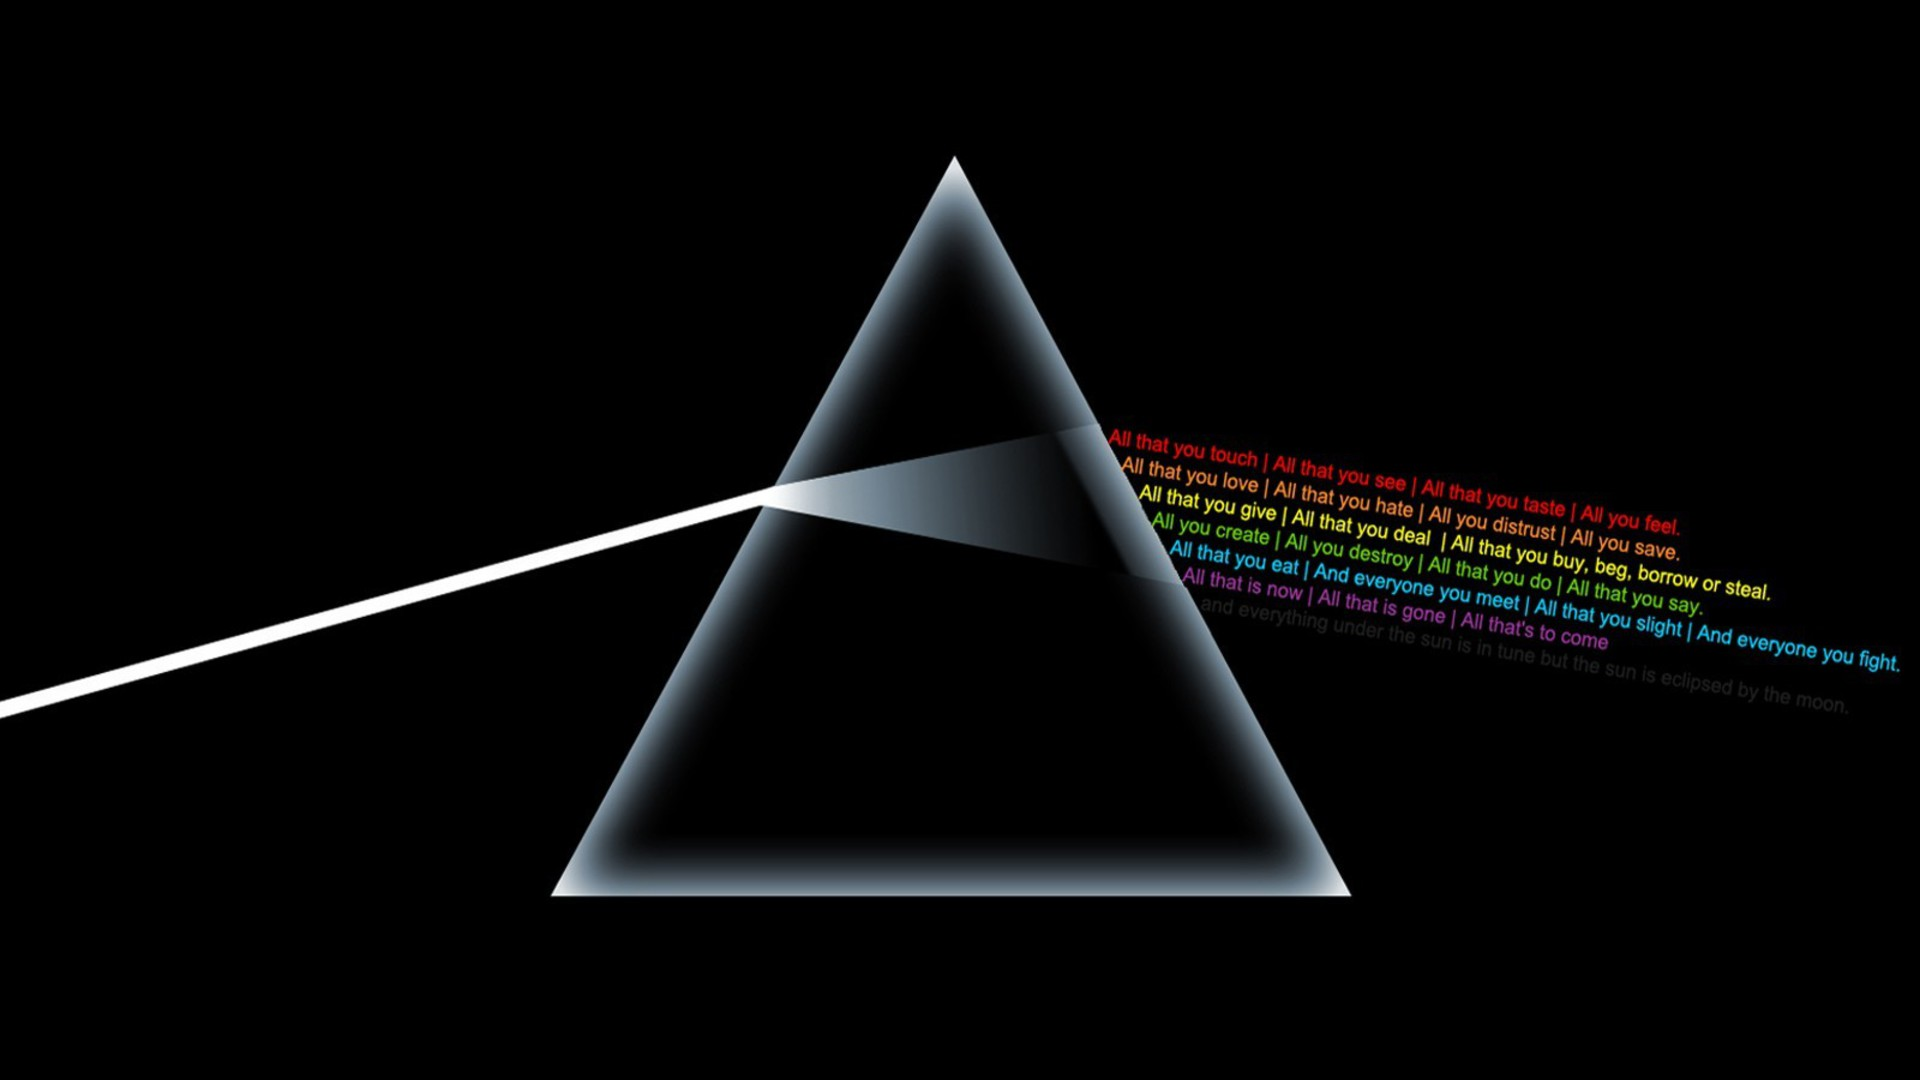 floyd rock dark side of the moon wallpaper allwallpaper